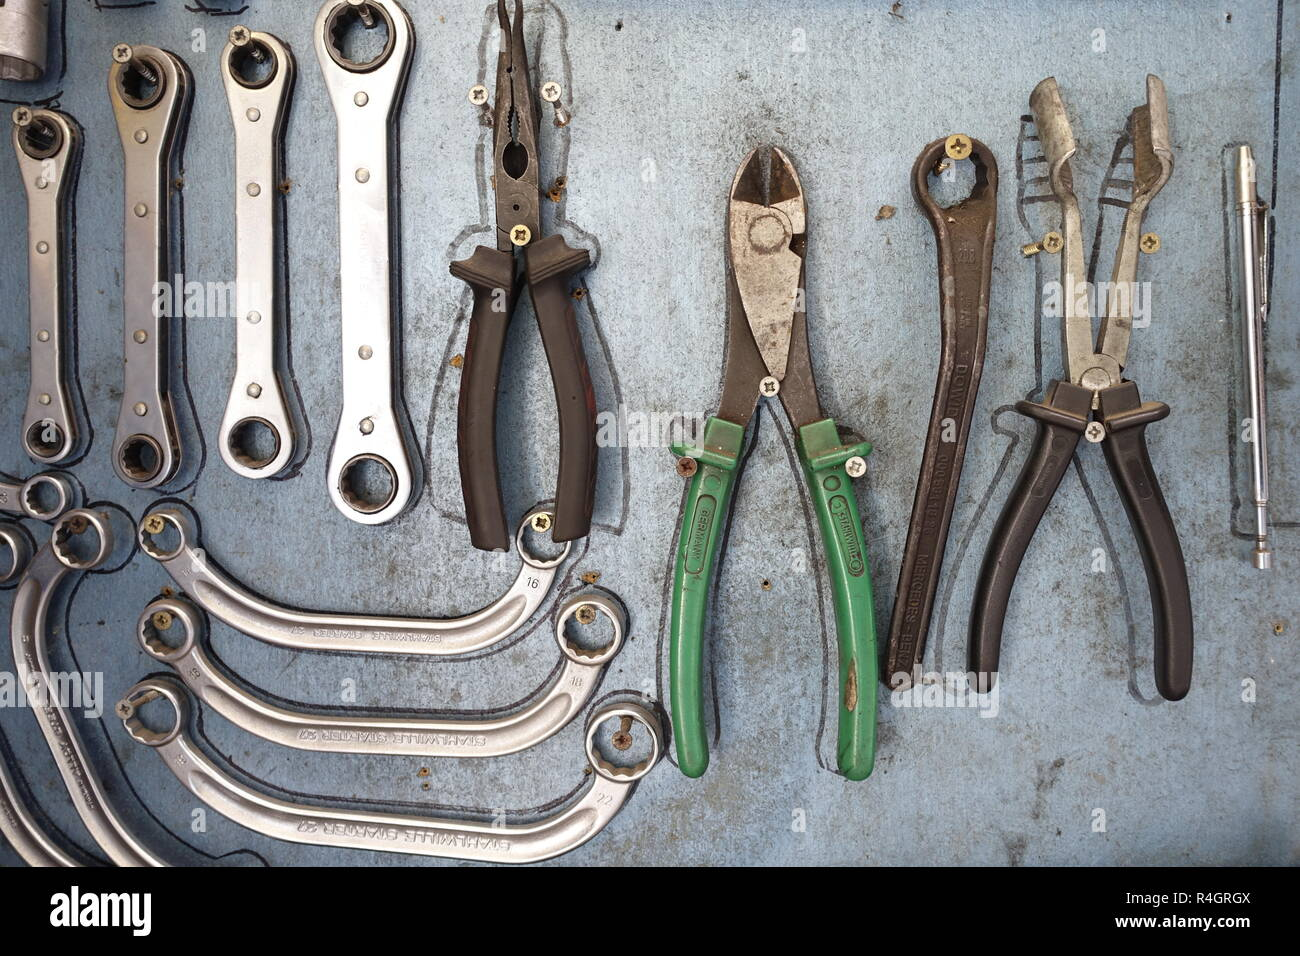 Tools, various spanners and pliers in a car repair shop, Germany - Stock Image